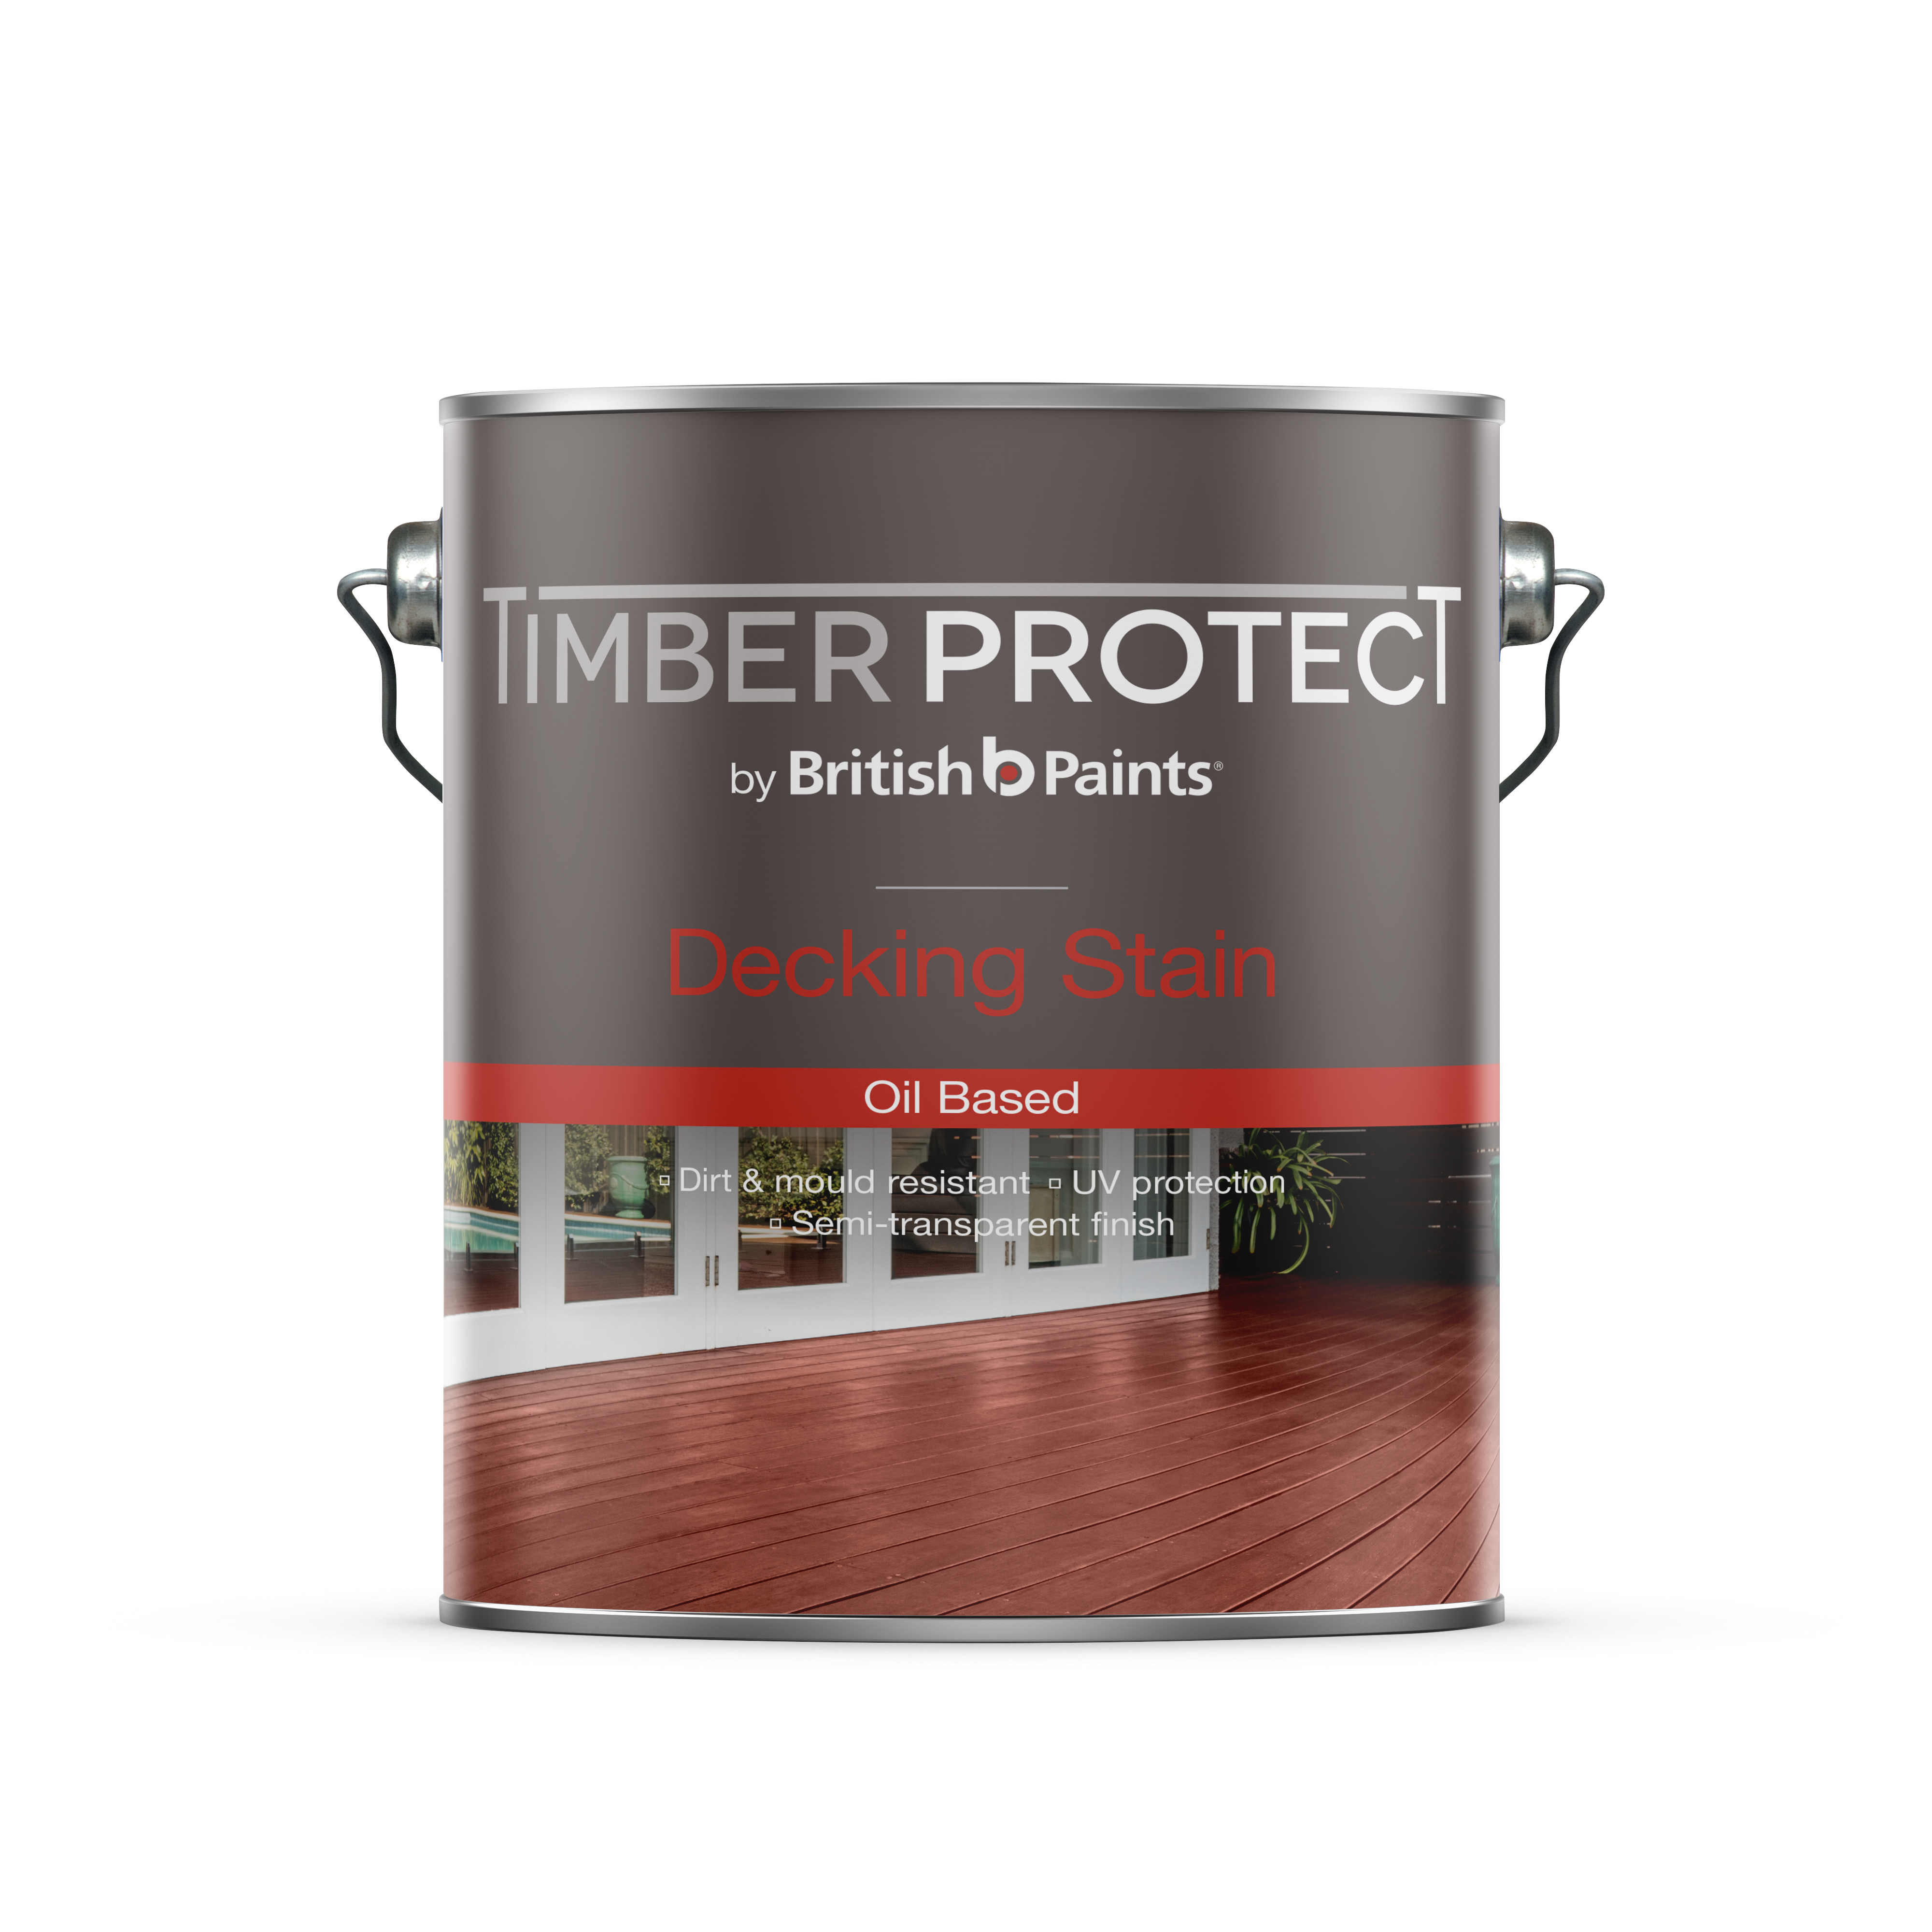 timber protect decking stain